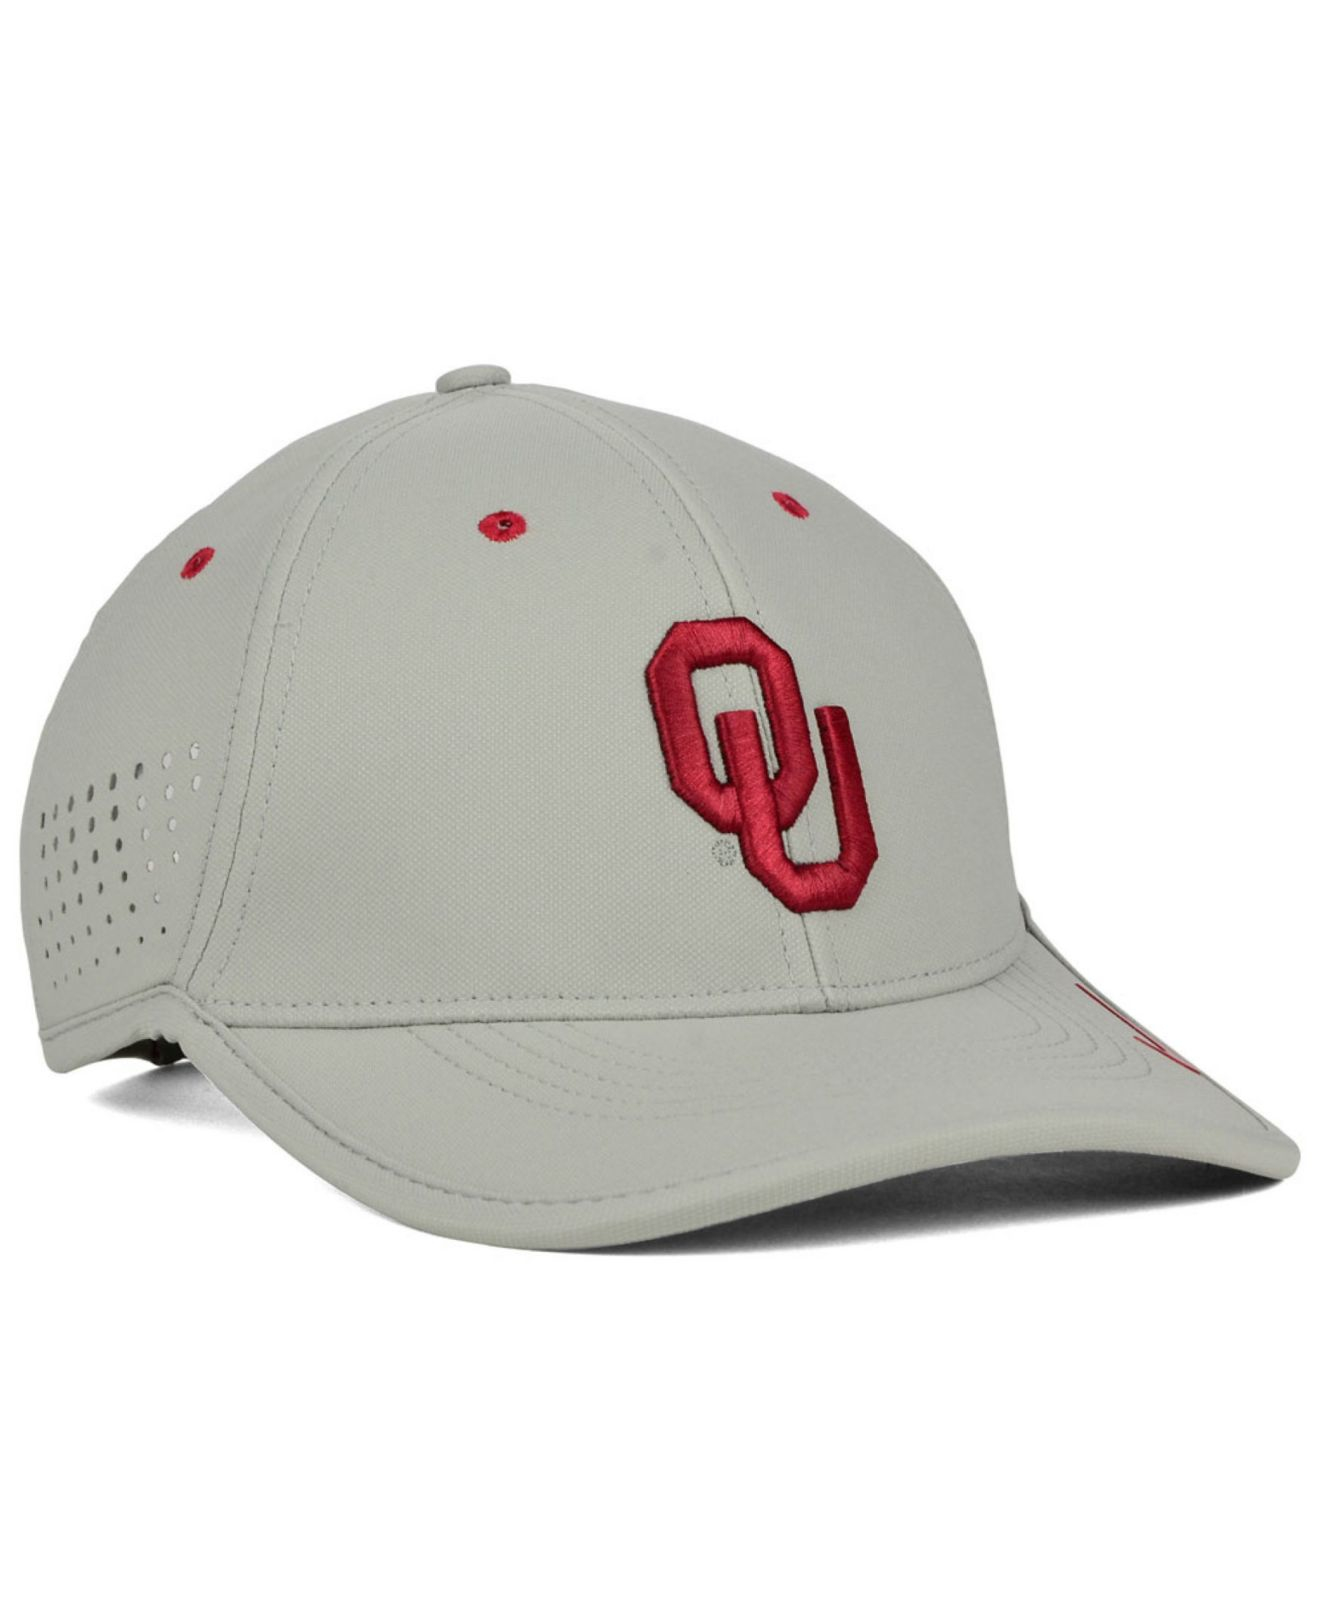 729d4f49beaa4 ... inexpensive lyst nike oklahoma sooners dri fit coaches cap in gray for  men 09b22 a2f78